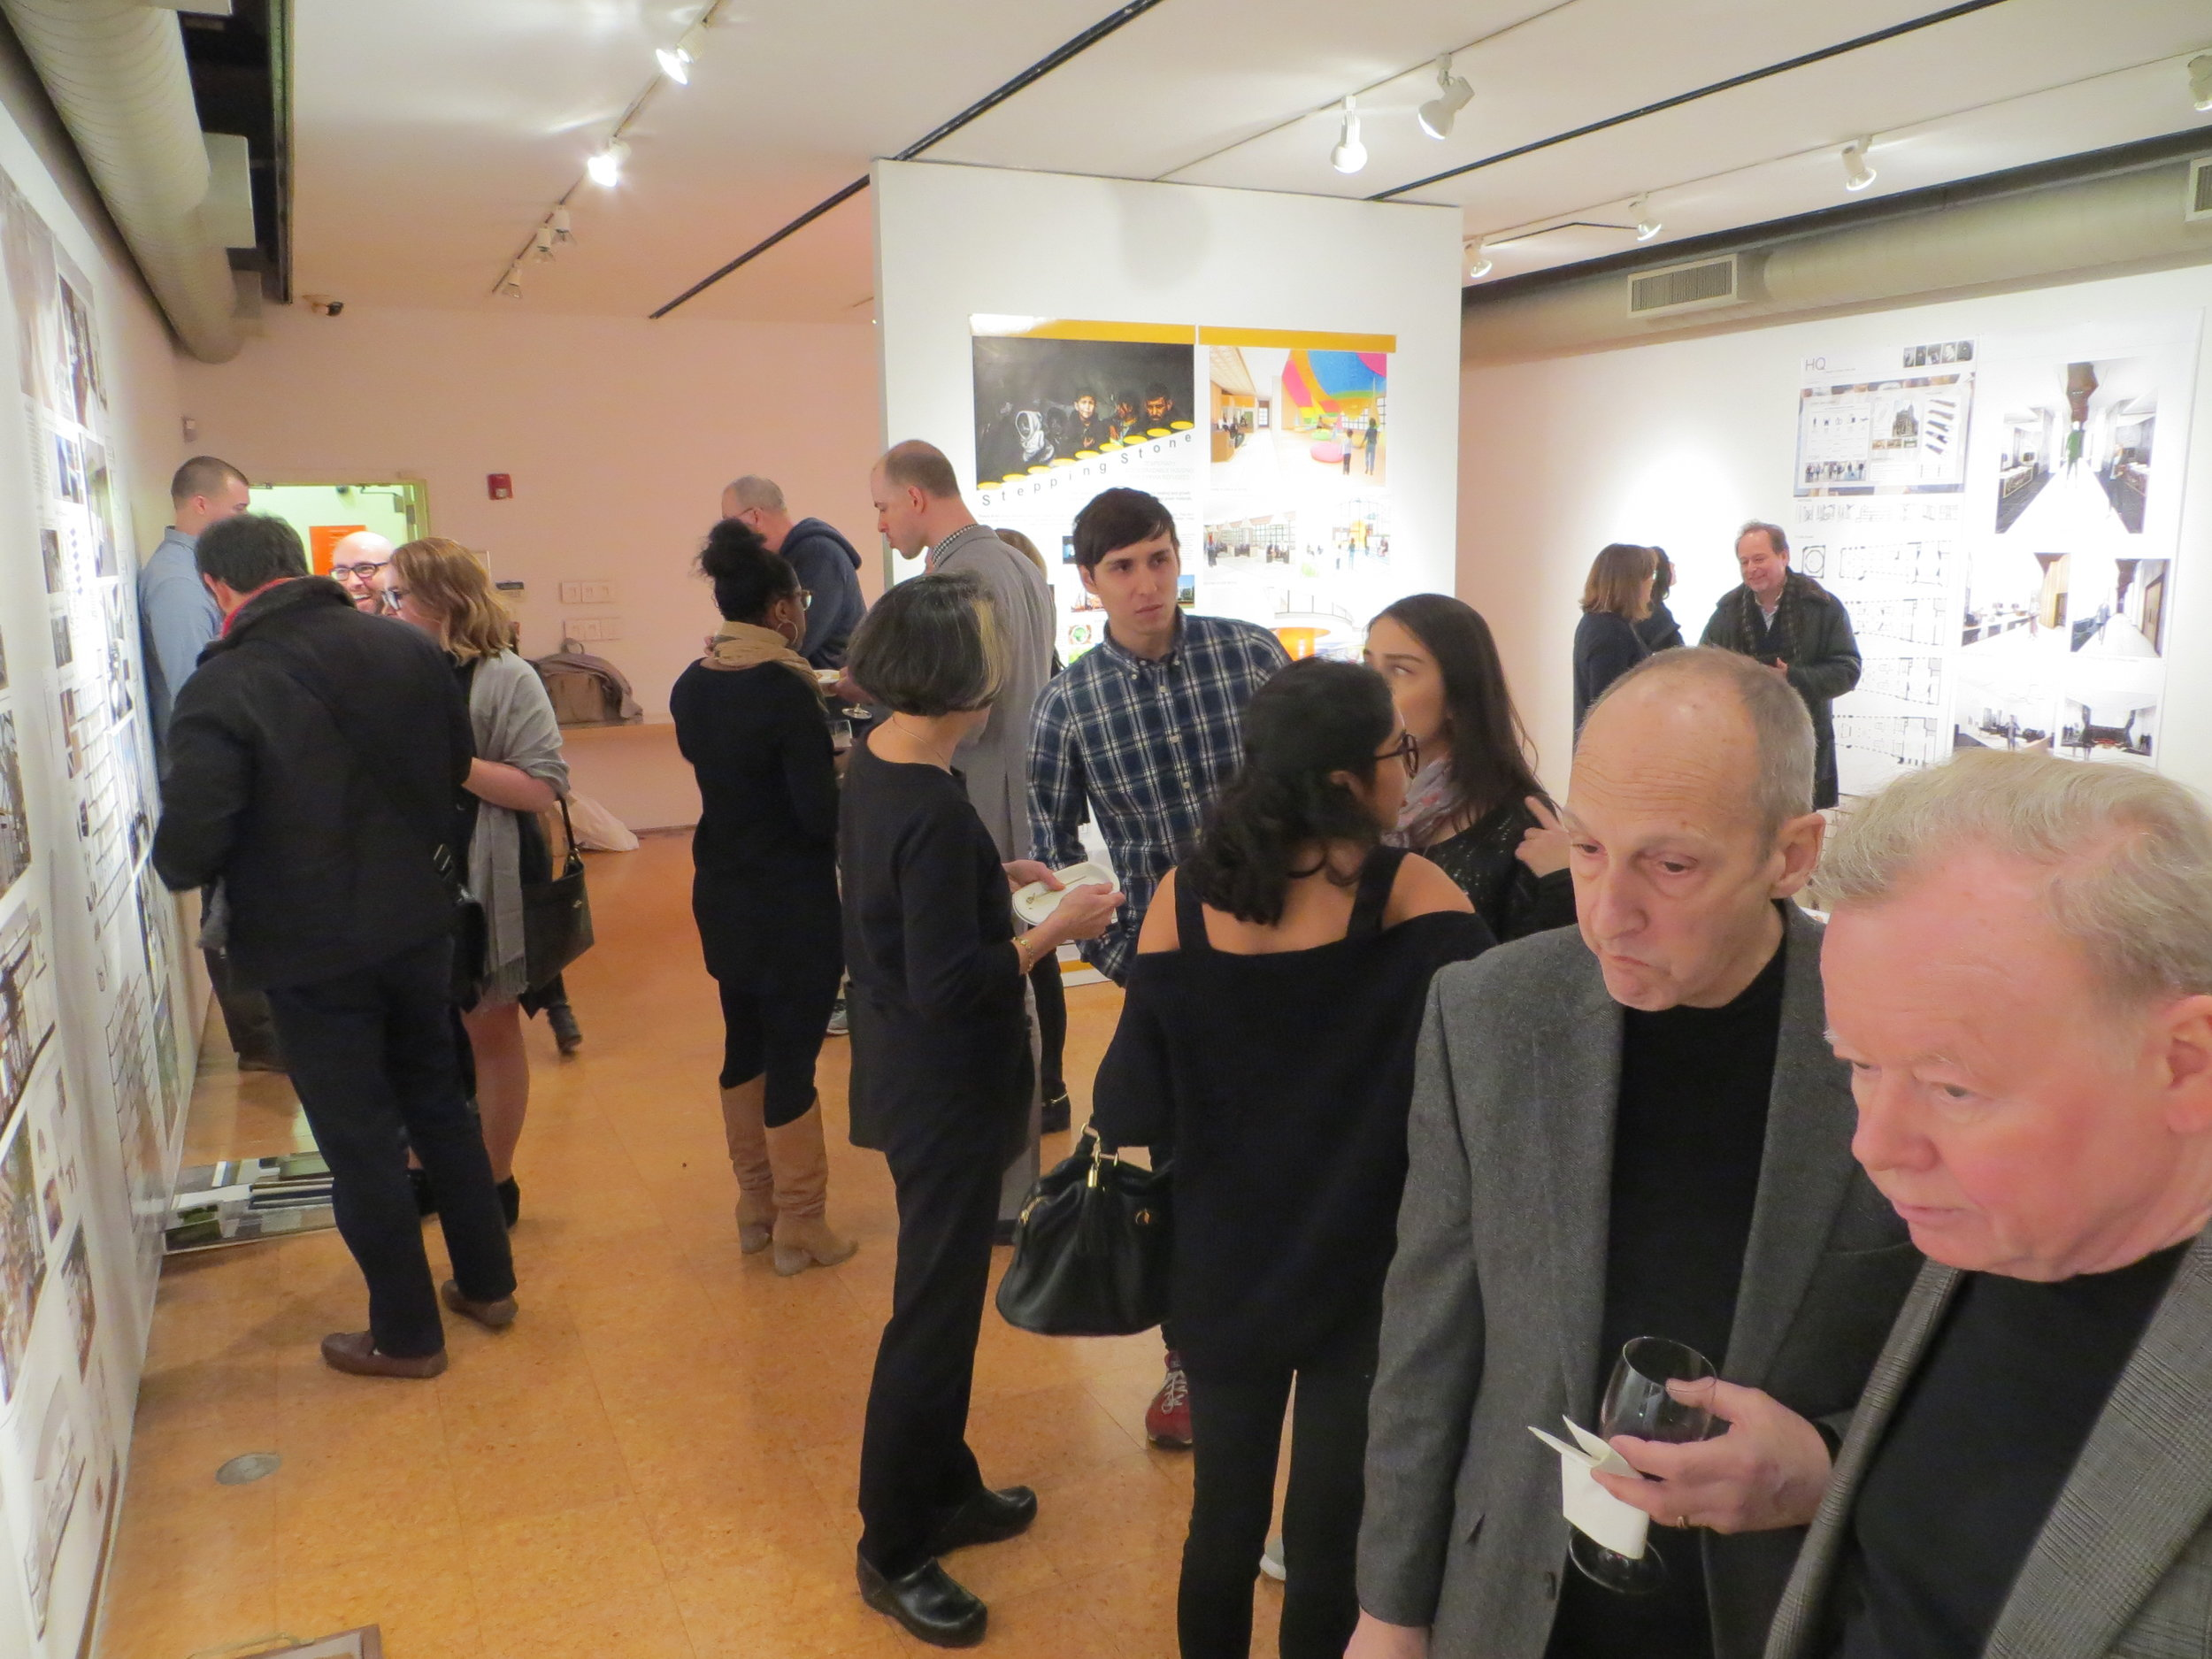 bfa-2017-winter-thesis-projects-exhibition_32753250215_o.jpg